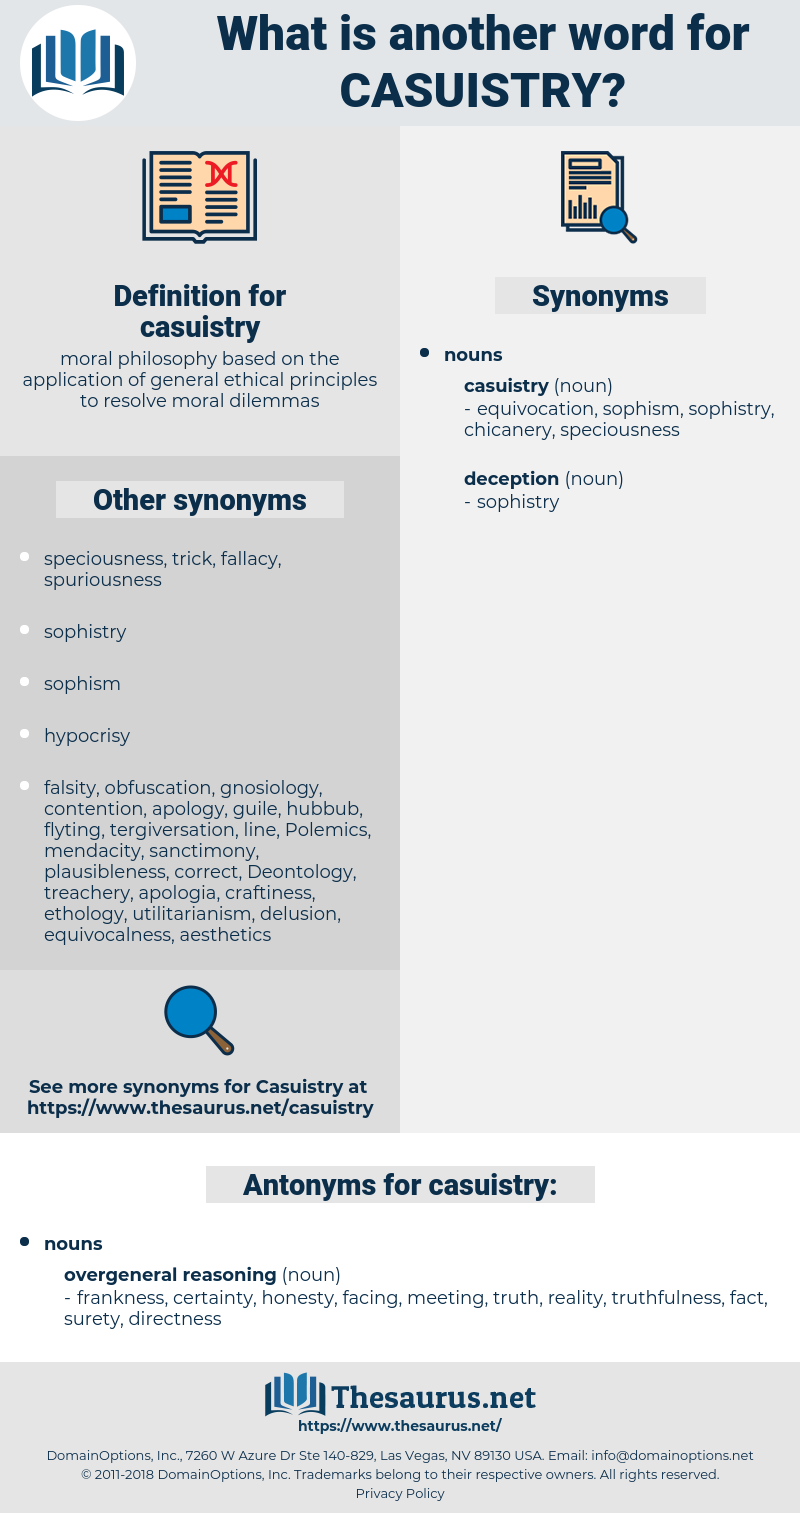 casuistry, synonym casuistry, another word for casuistry, words like casuistry, thesaurus casuistry